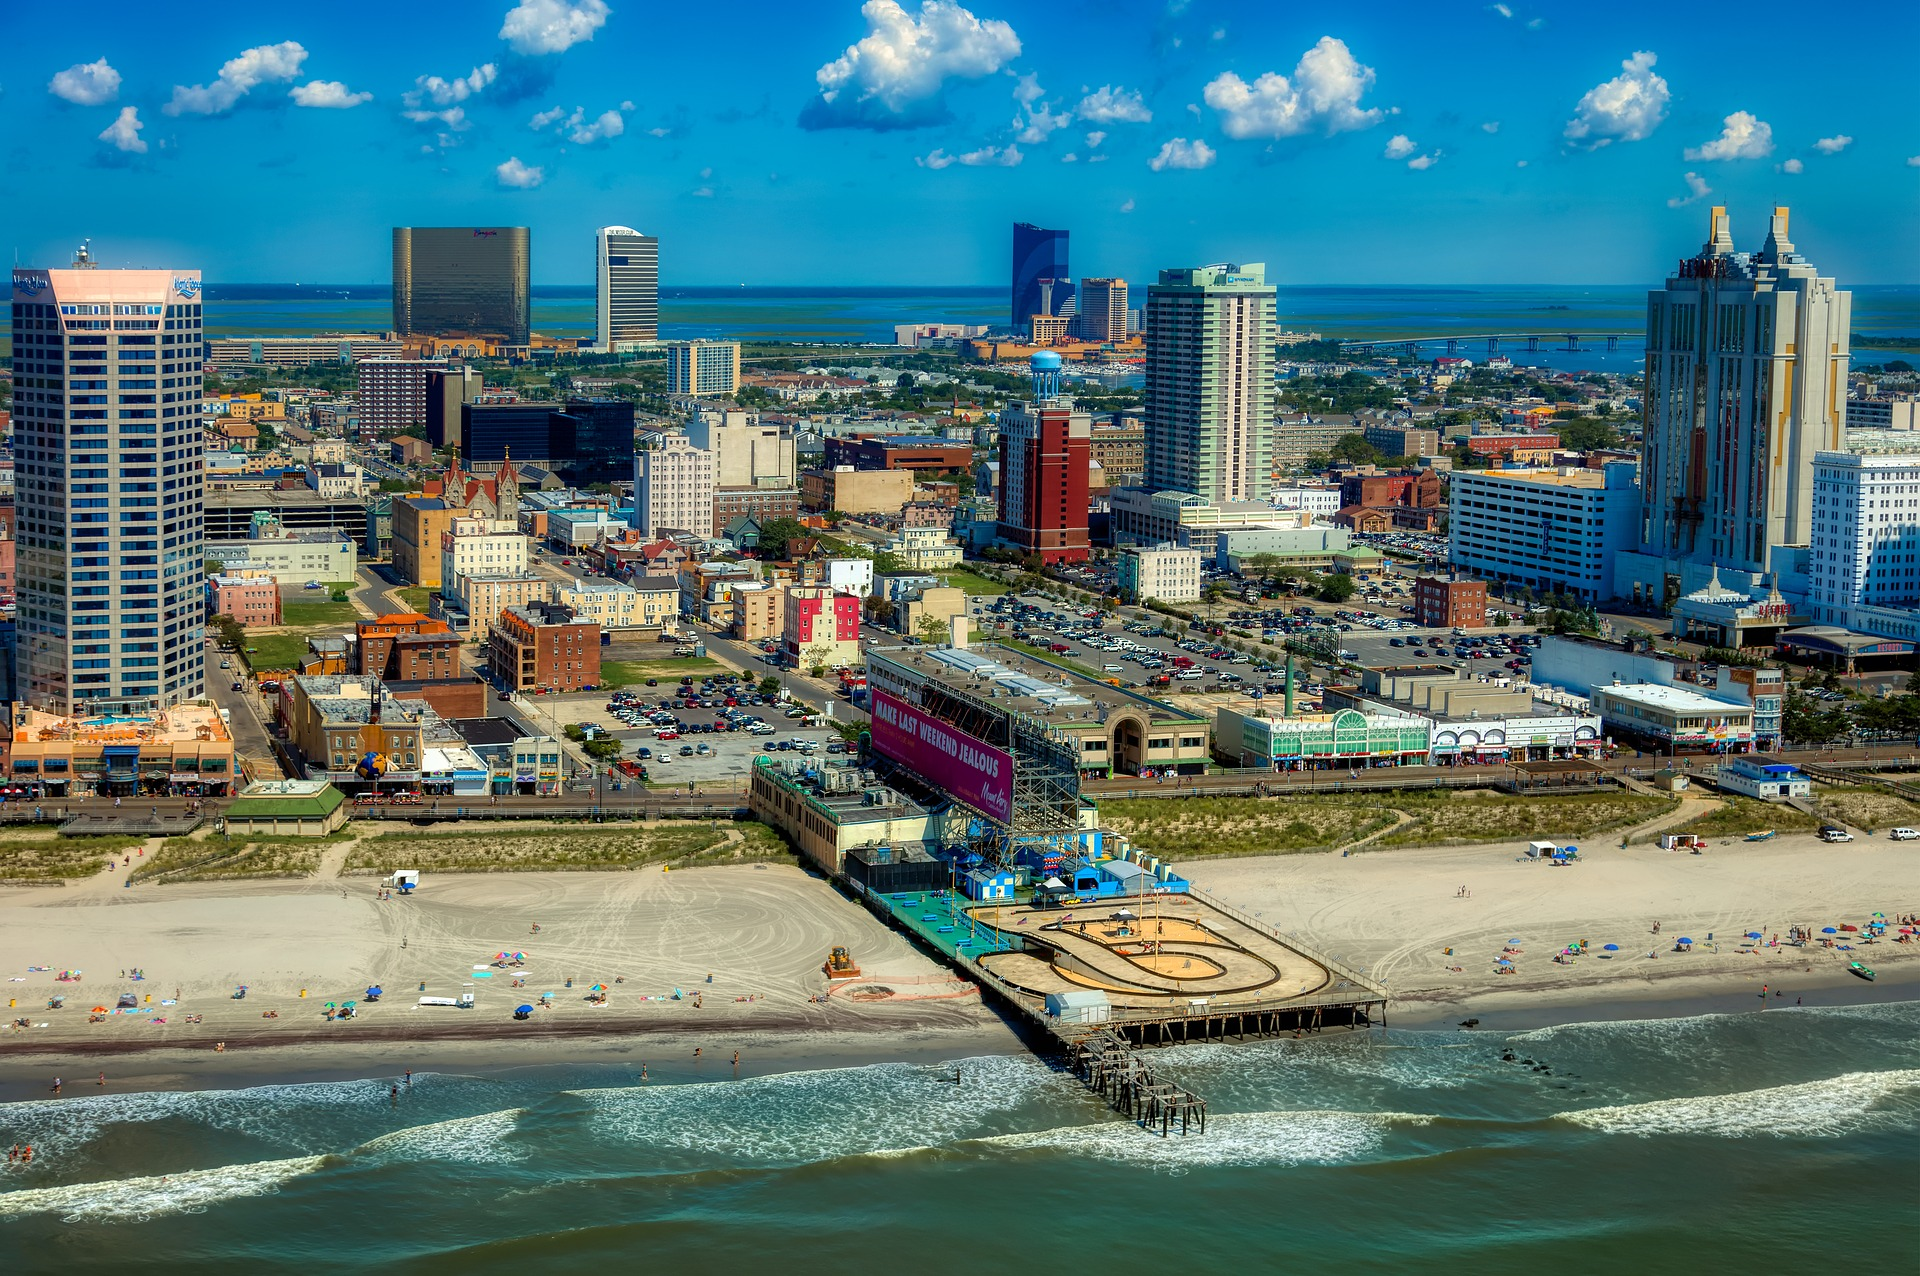 New Jersey online casino hits revenue record for July 2021